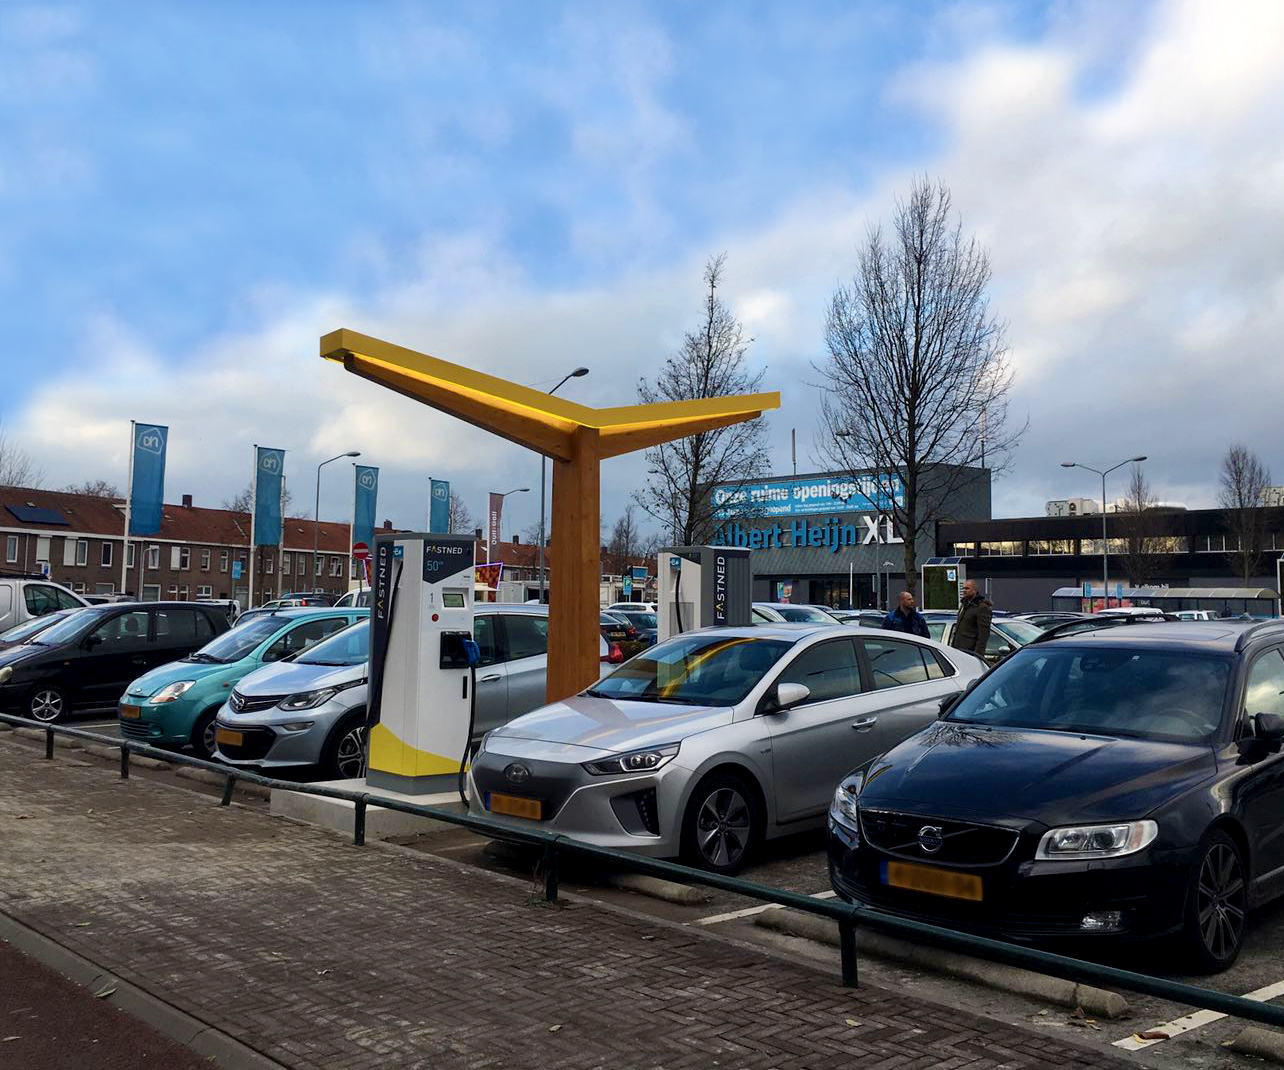 297415 fastned%20fast%20charging%20station super%20market%20model albert%20heijn 2 430aaa original 1544090803